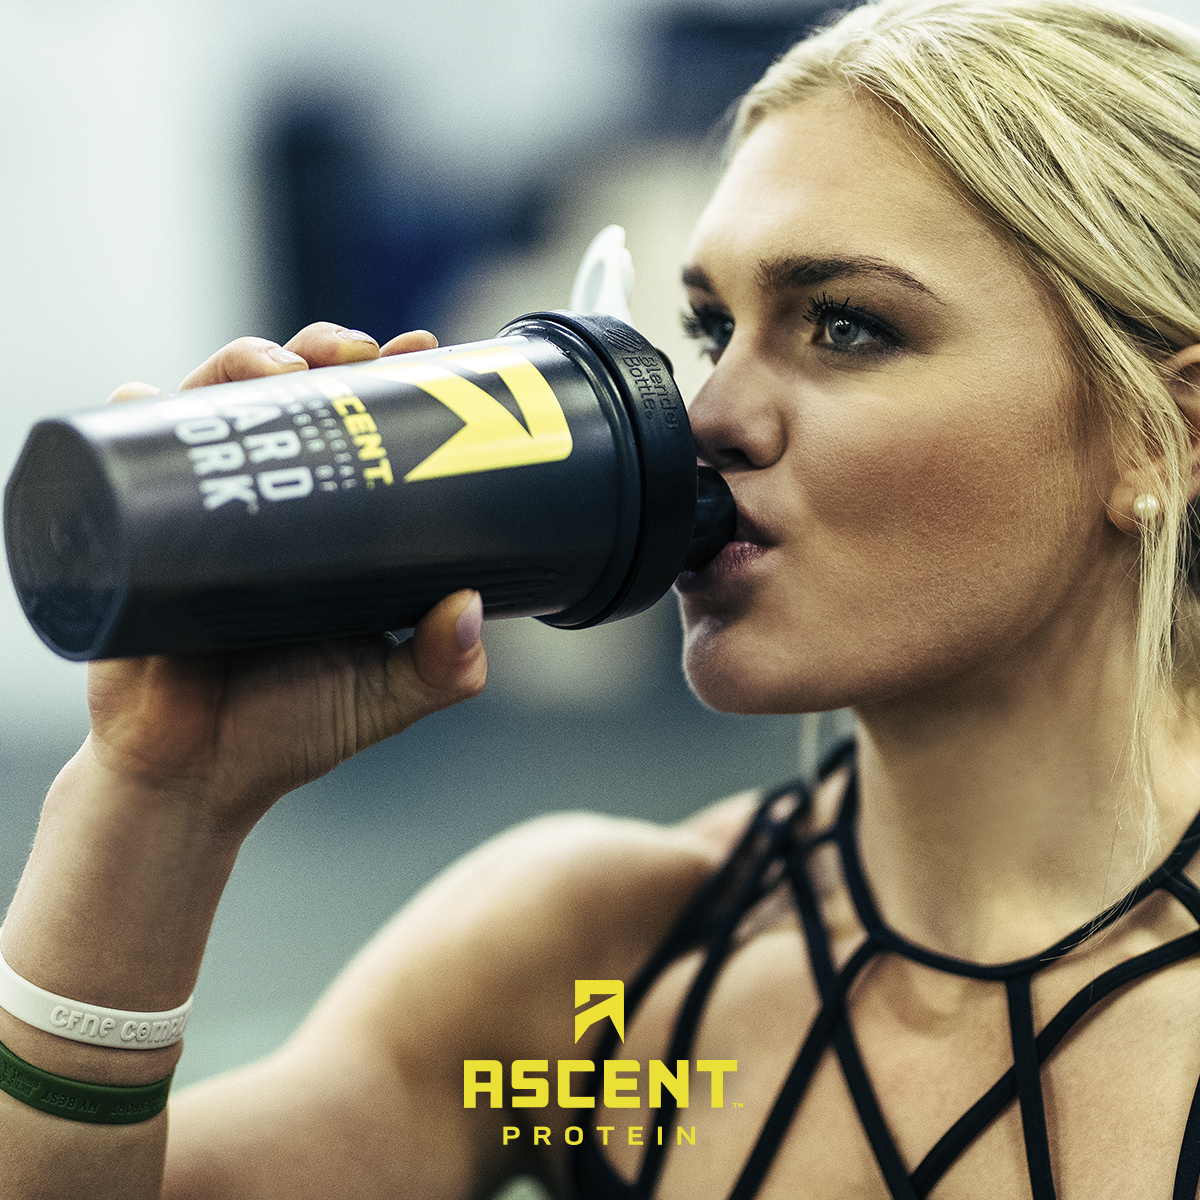 Ascent products are available August 1, 2018 in more than 400 Whole Foods locations across the United States.